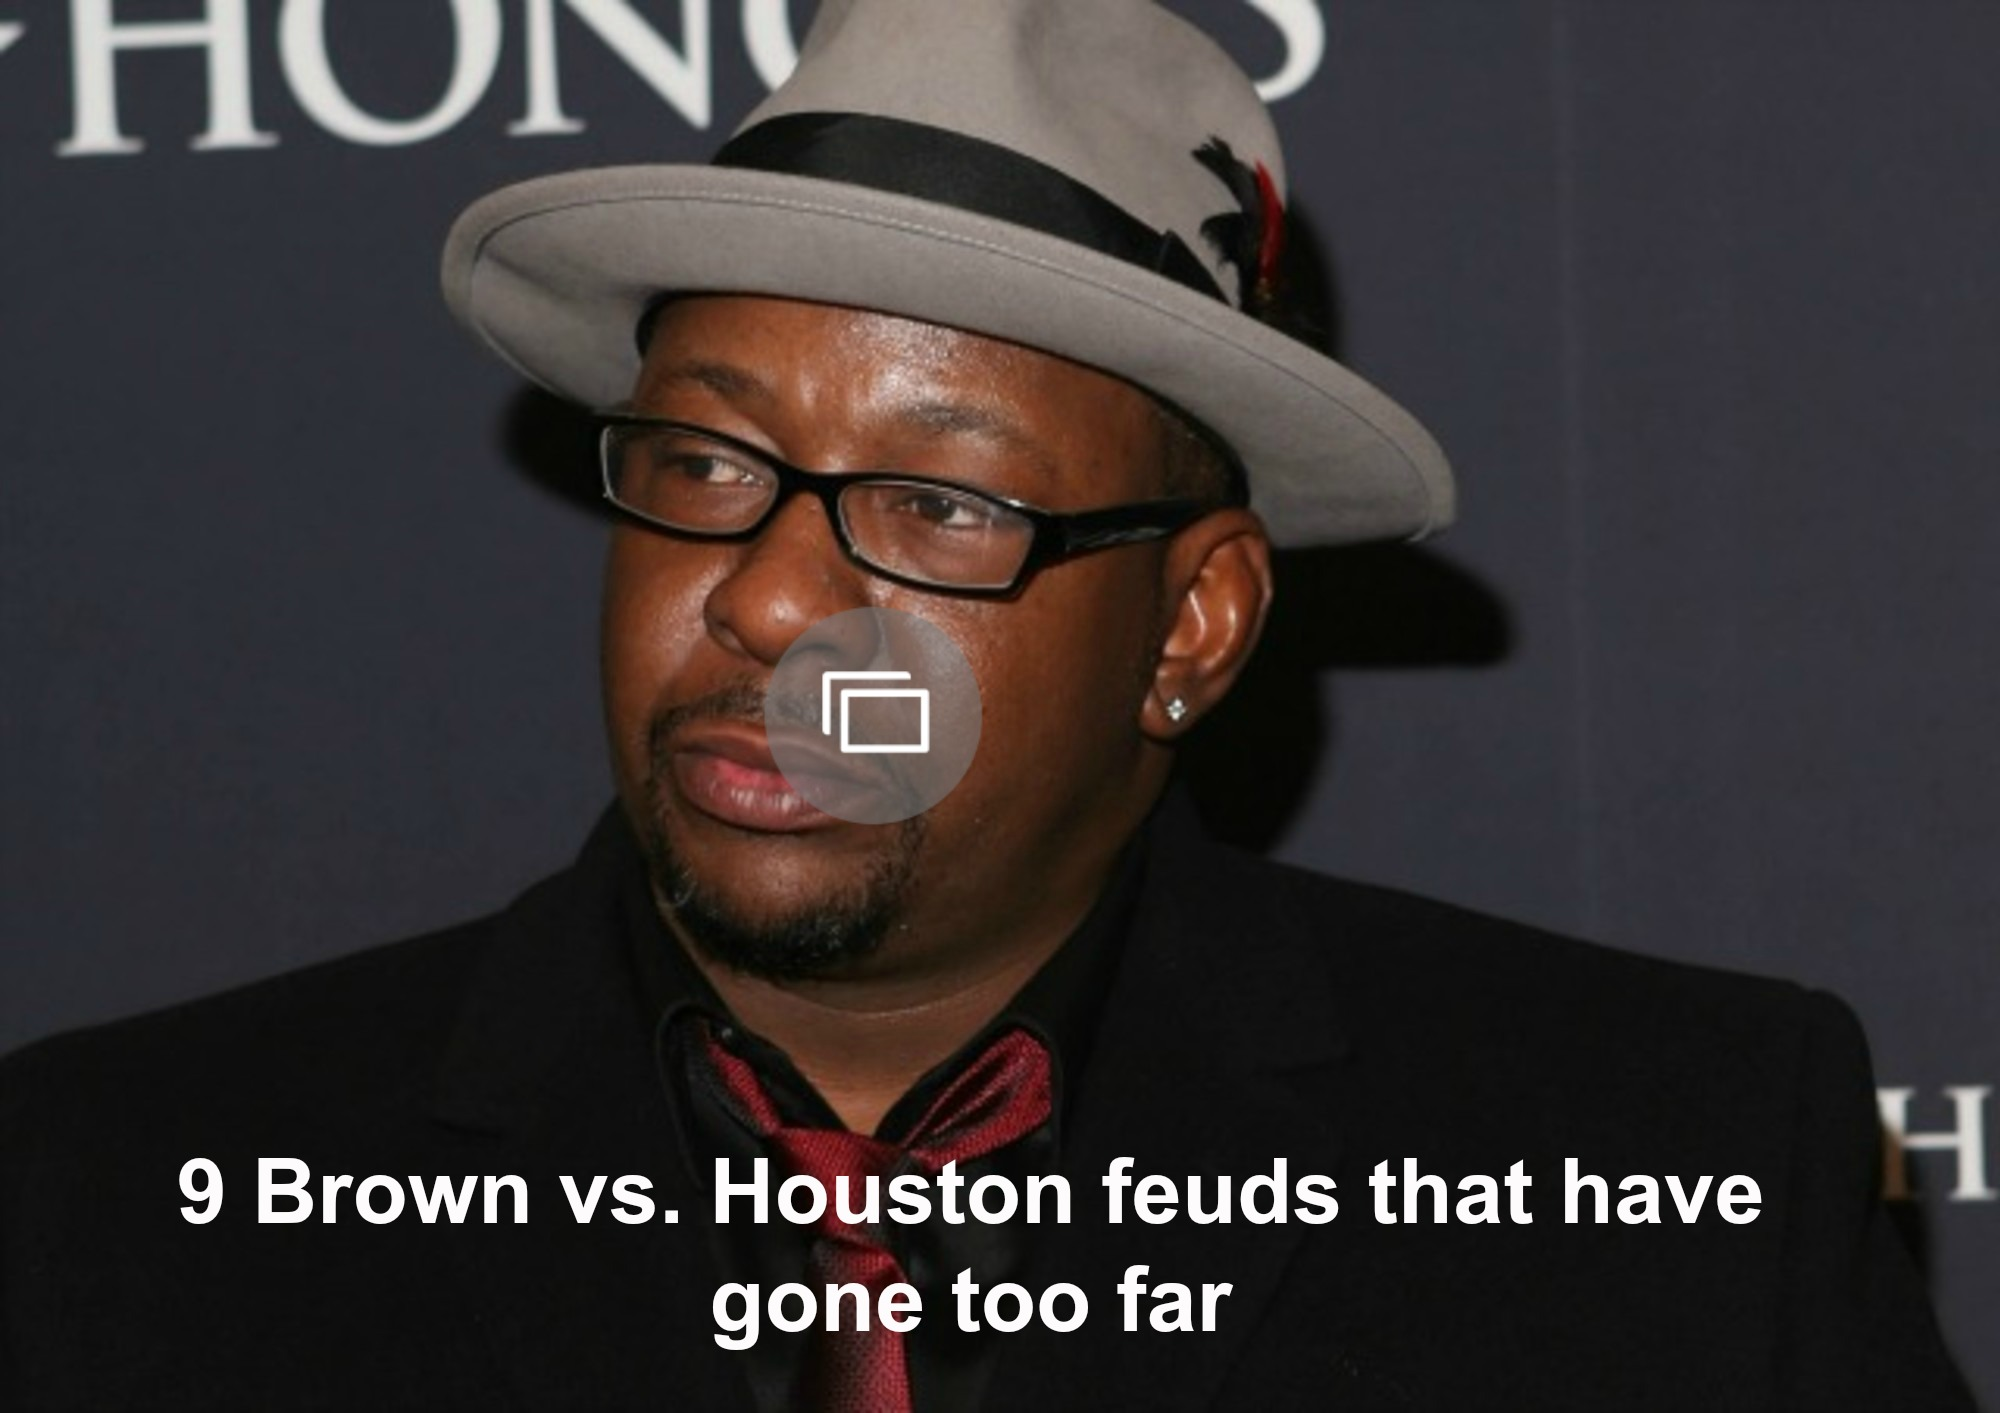 Bobby Brown is making no secret of who he thinks is responsible for Bobbi Kristina's untimely death